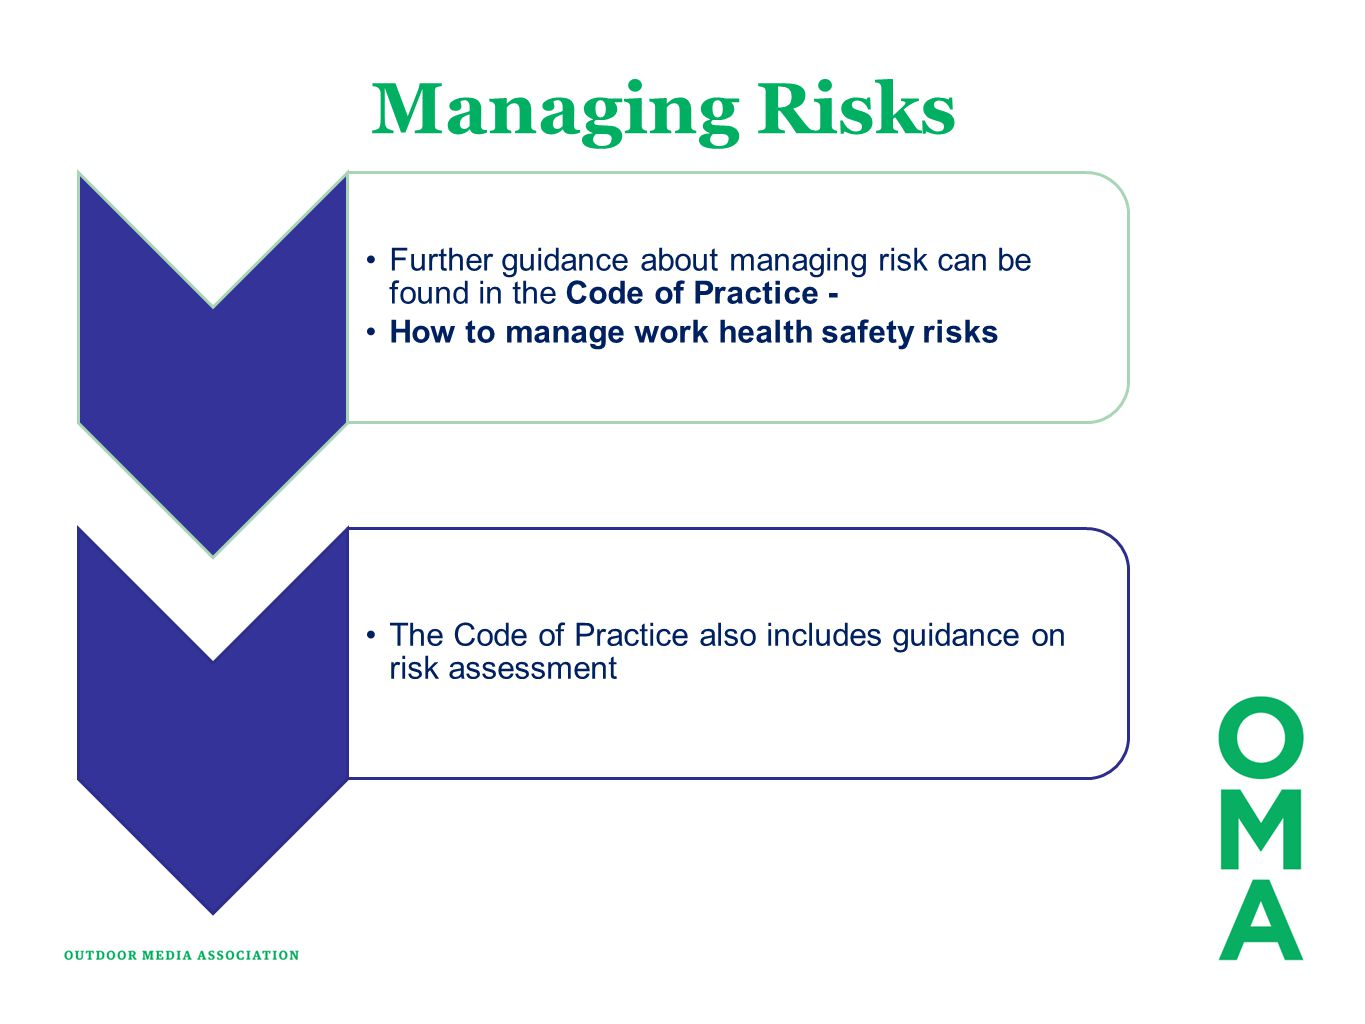 Managing Risks Further guidance about managing risk can be found in the Code of Practice - How to manage work health safety risks.